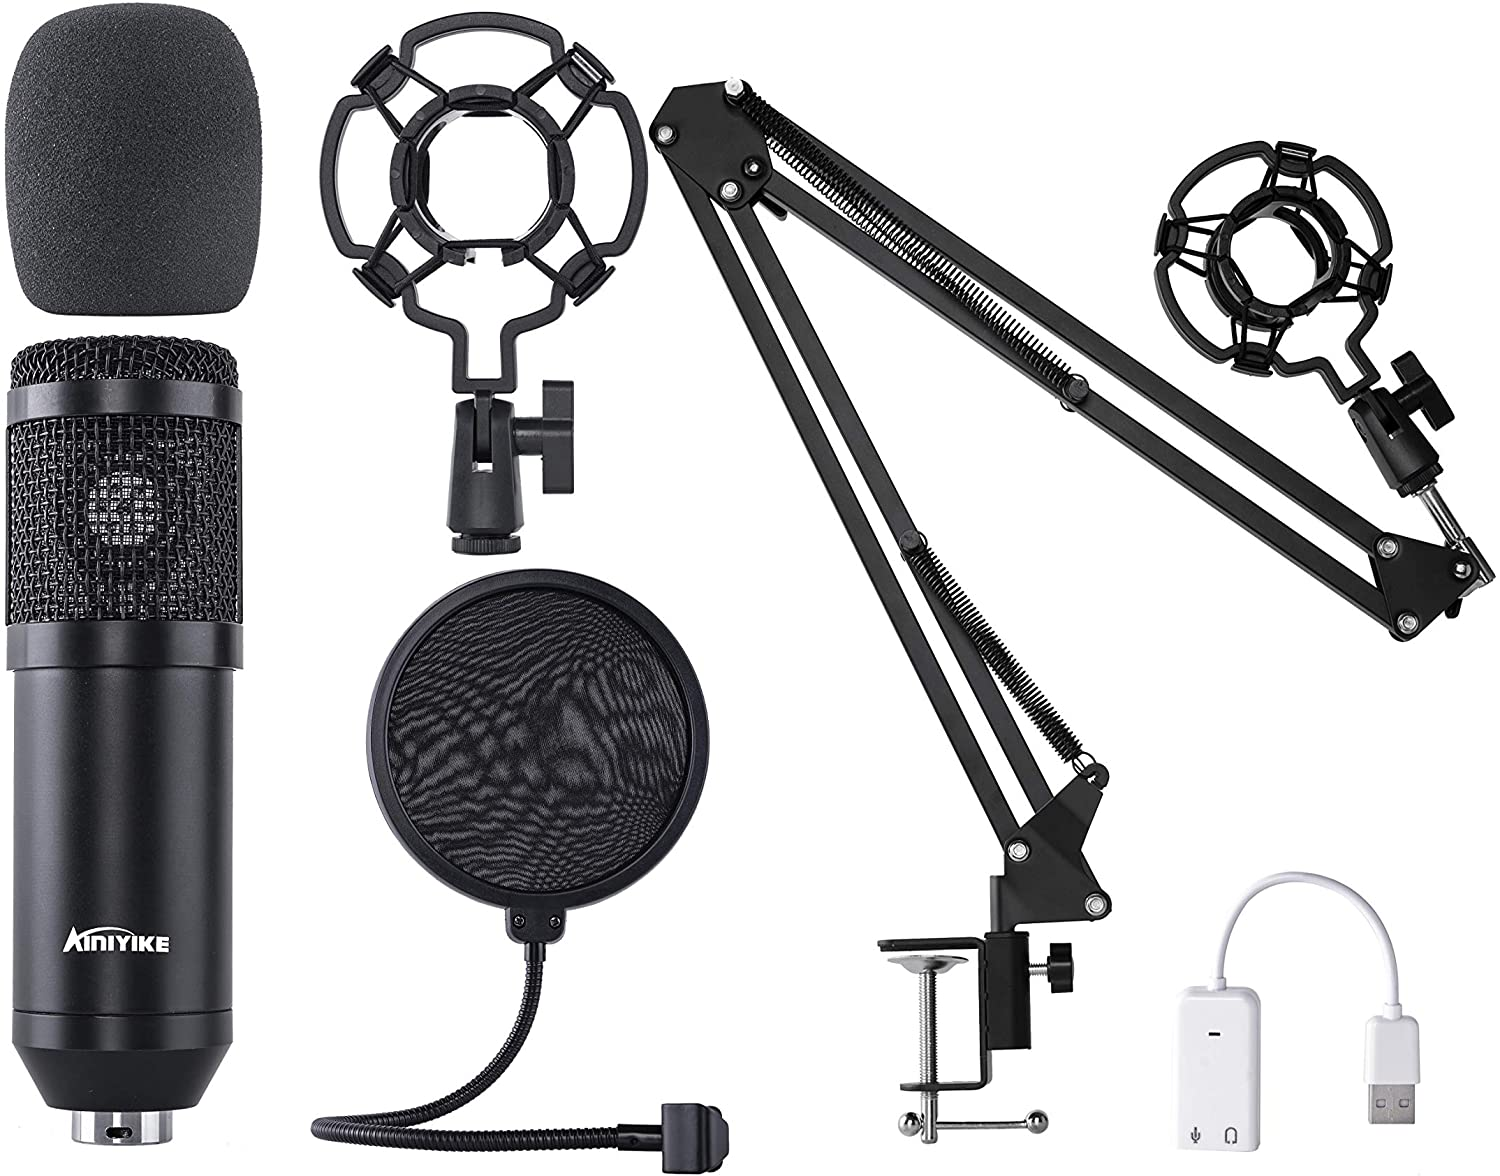 AInIYIKE Condenser Microphone Challenge the lowest price of Japan Max 45% OFF ☆ TM-800 Mic Set for Recordi Studio